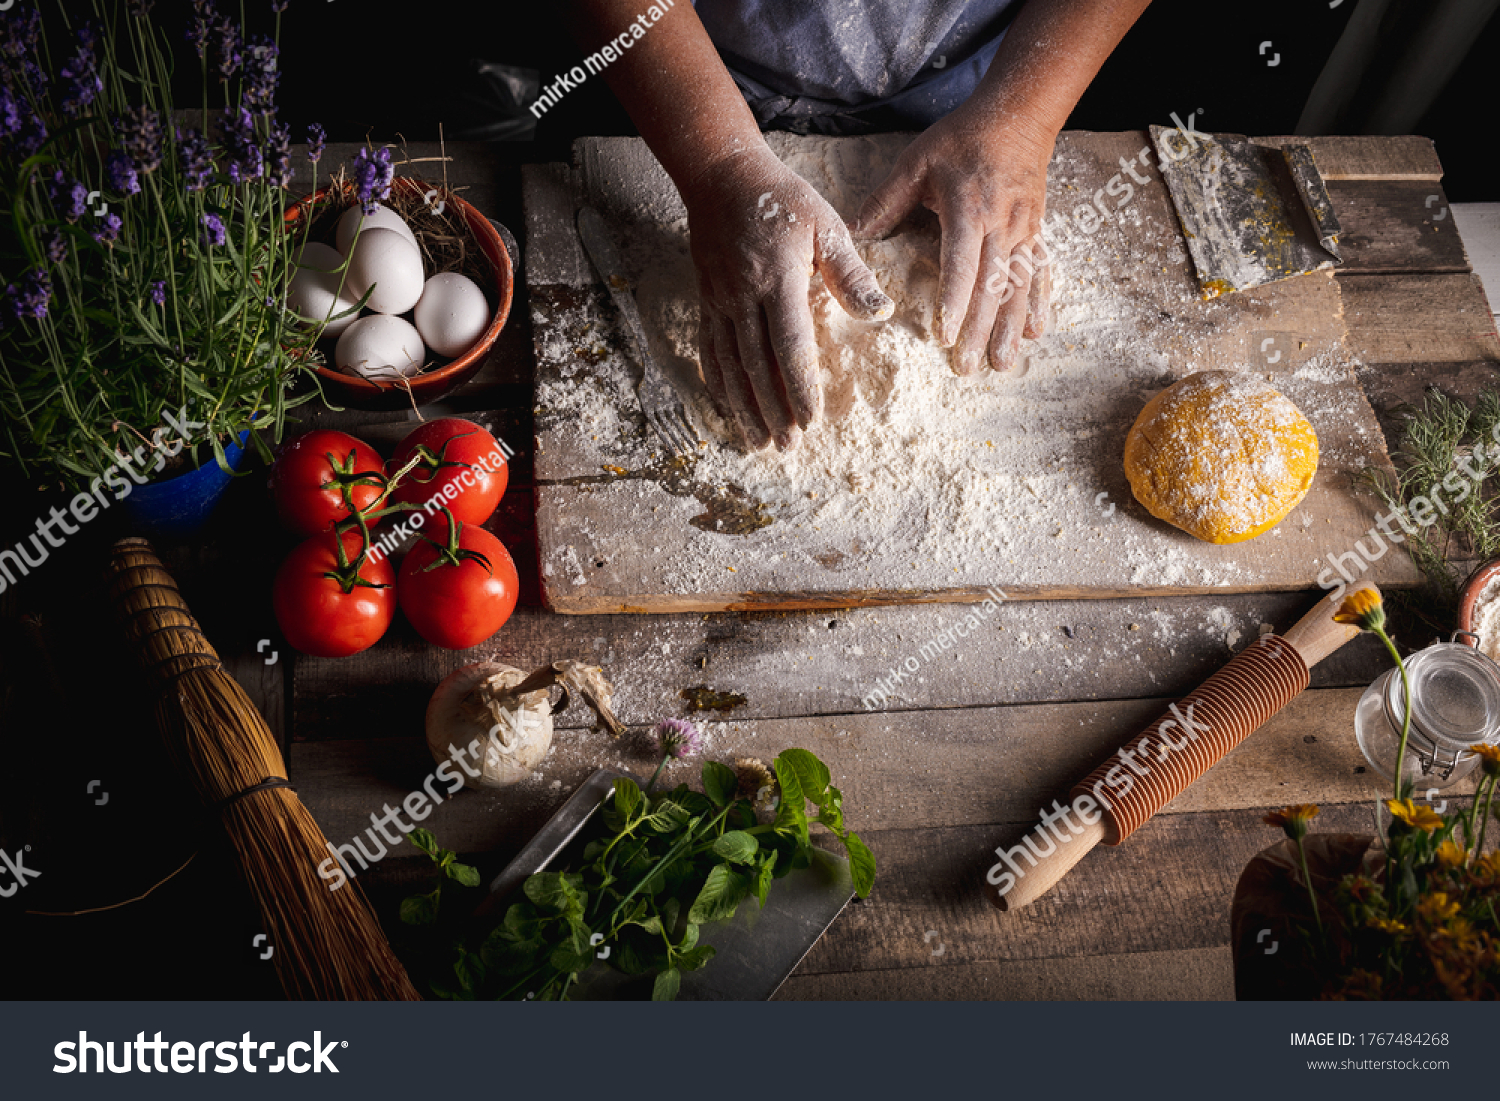 https://lnx.mirkone.it/wp-content/uploads/2016/01/stock-photo-seen-from-the-top-of-the-homemade-pasta-making-process-the-chef-makes-traditional-italian-fresh-1767484268.jpg